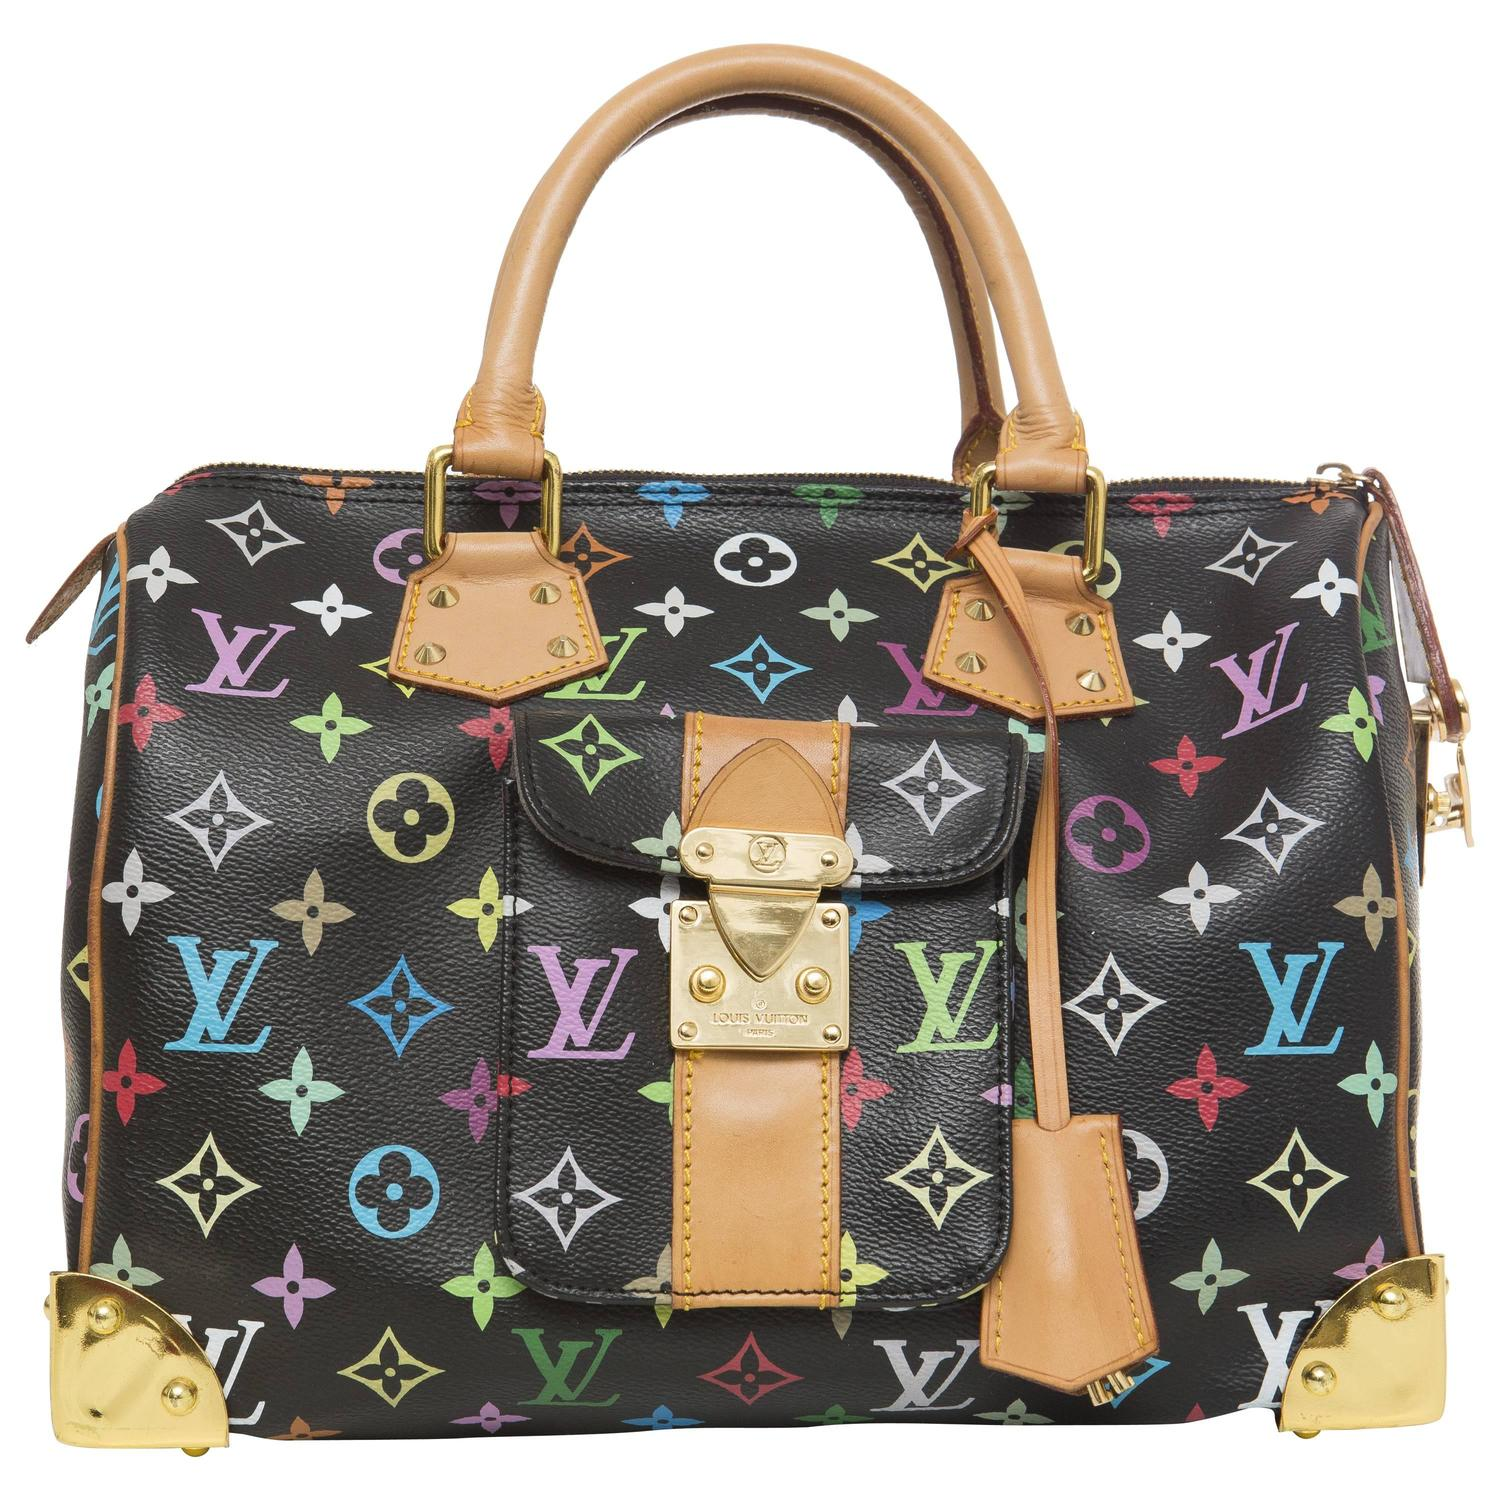 2ba0d9c0aaec Louis Vuitton Limited Edition Takashi Murakami Collection Speedy 30 Hand Bag  For Sale at 1stdibs